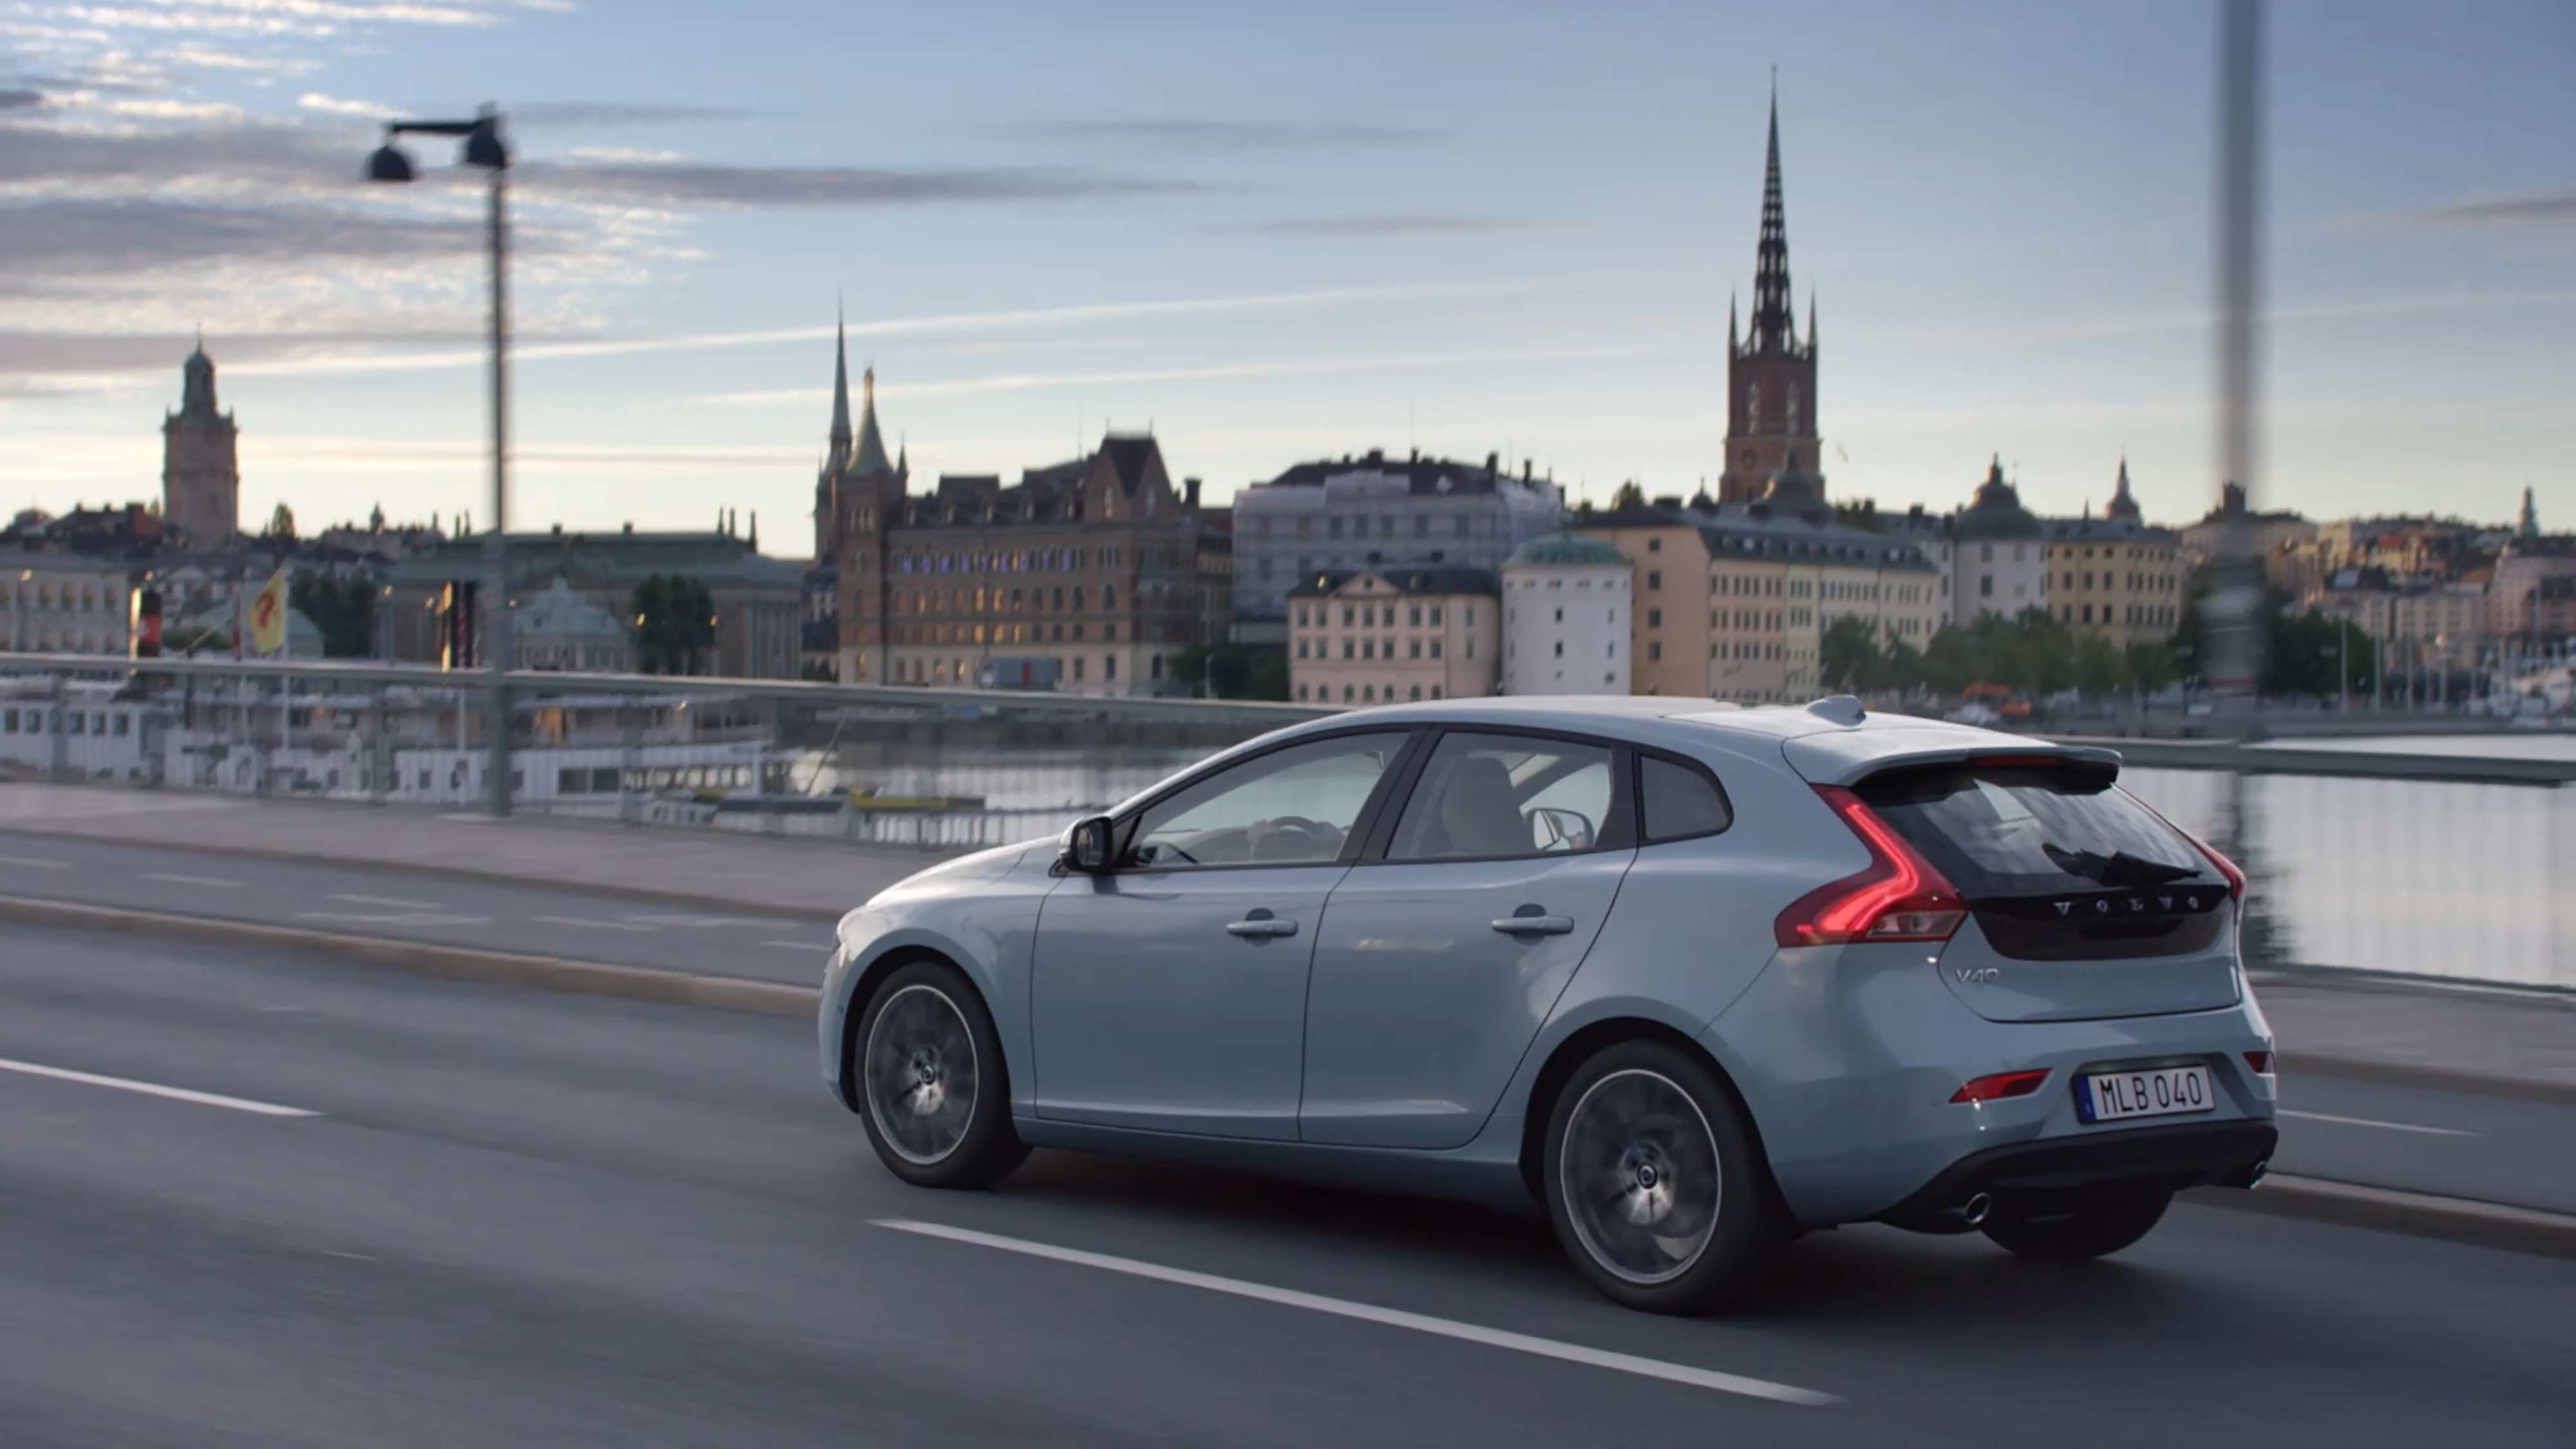 88 New Volvo V40 2019 Interior Overview